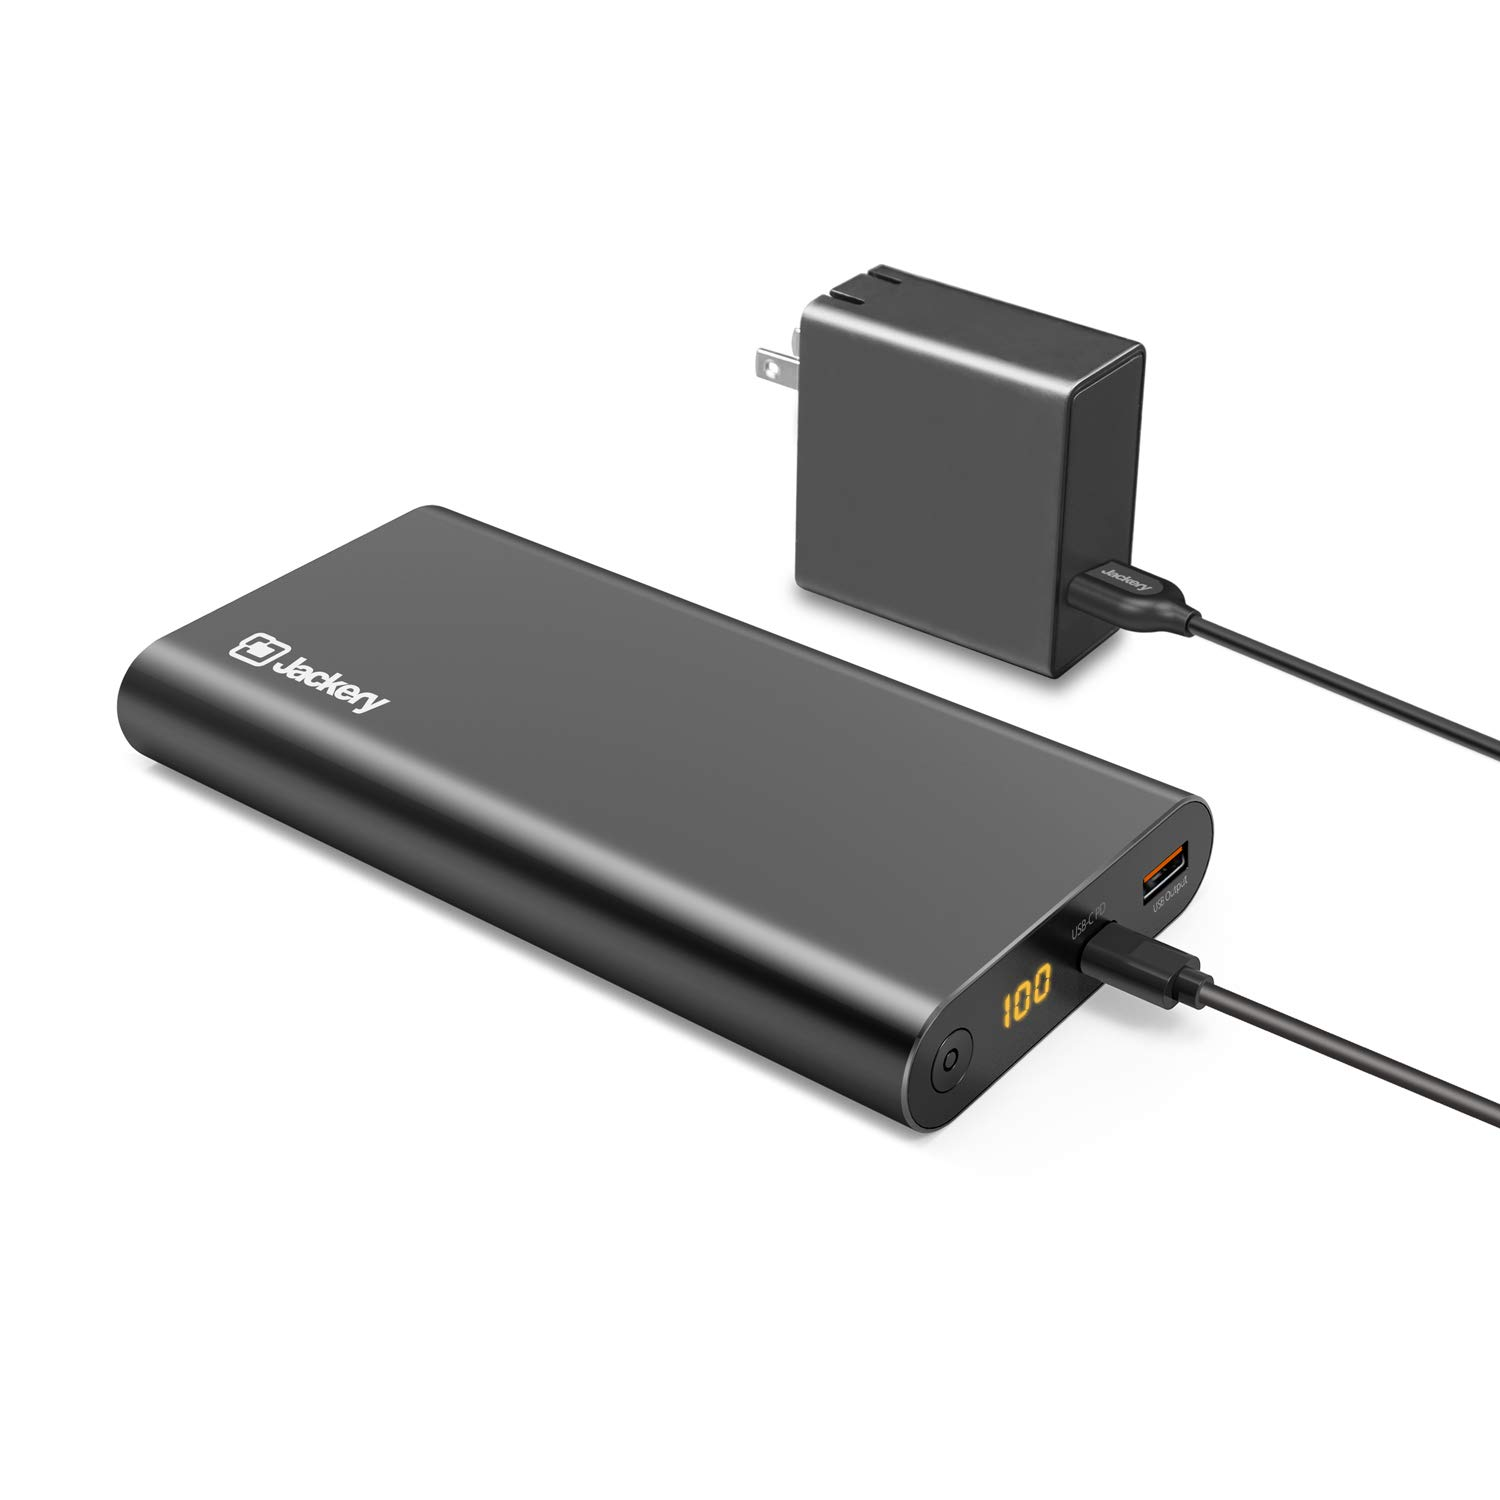 Jackery Supercharge 26800 PD, 26800mAh Portable Charger Power Outdoors USB C 45W Power Bank & 45W Wall Charger for iPhone 8/ X, Nexus 5X 6P, USB C Laptops(e.g.MacBook) Nintendo Switch [Power Delivery] by Jackery